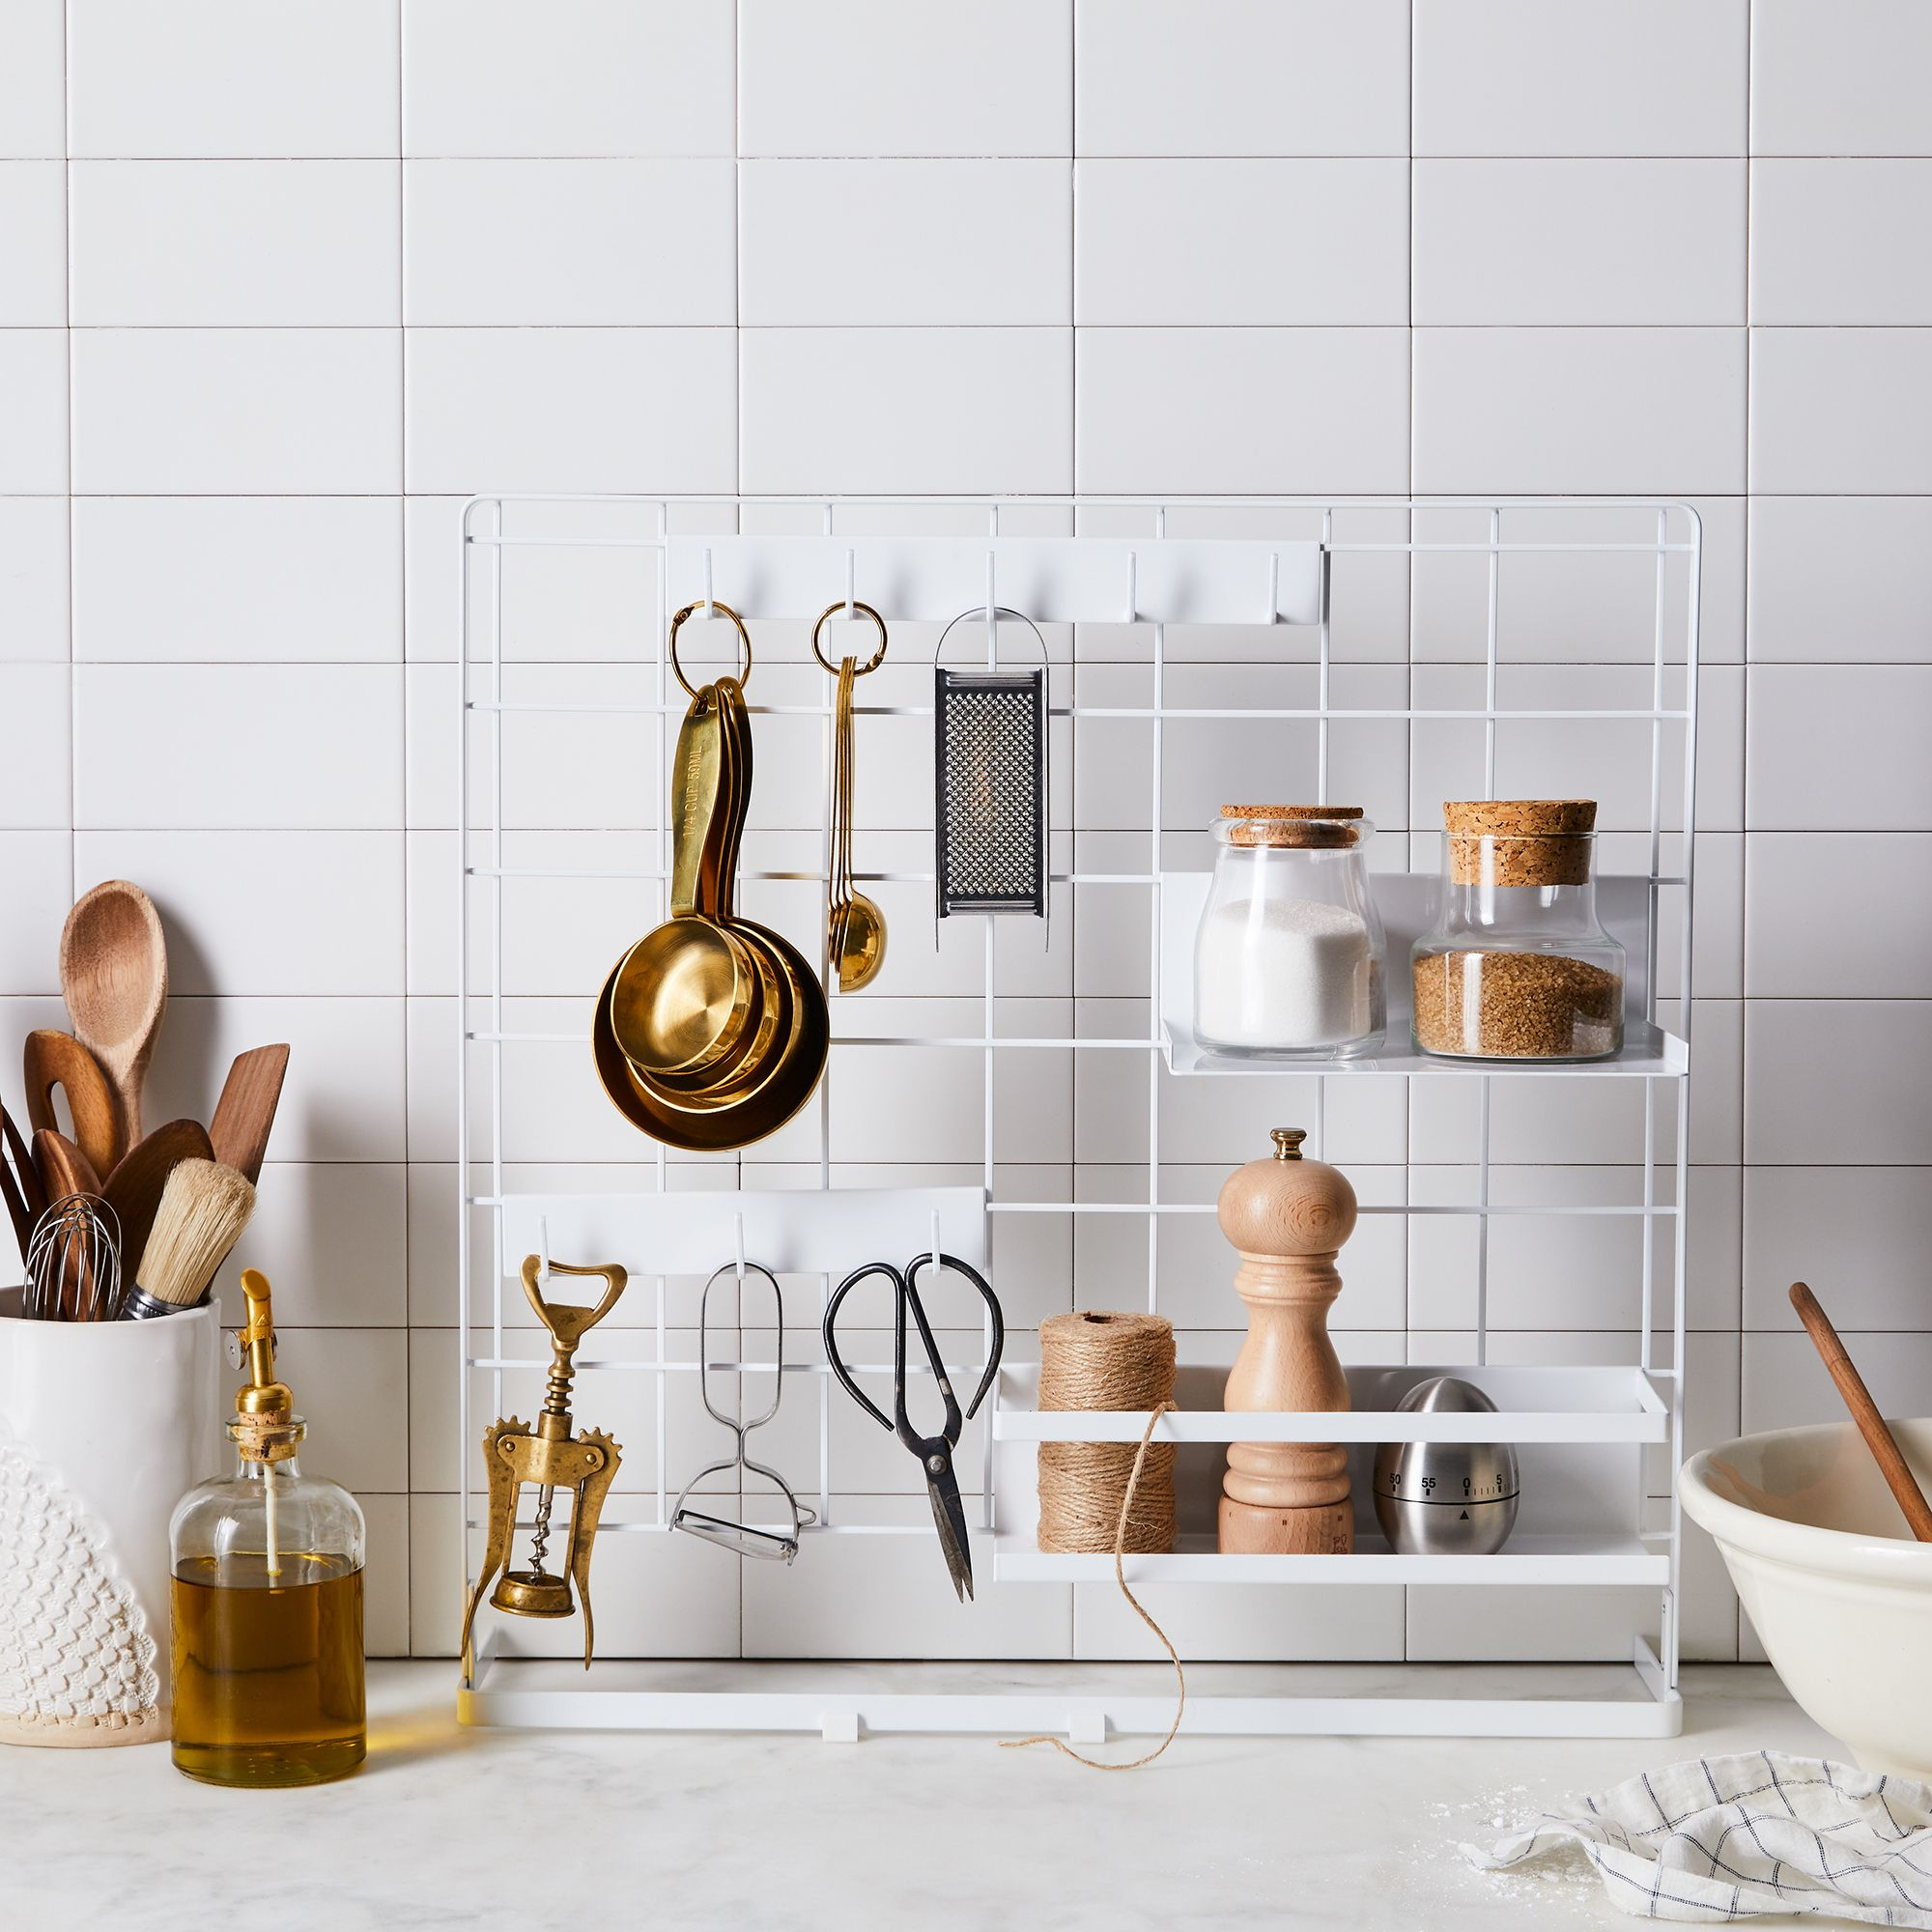 Stovetop Grid Organizer Panel & Storage Accessories$64–$92